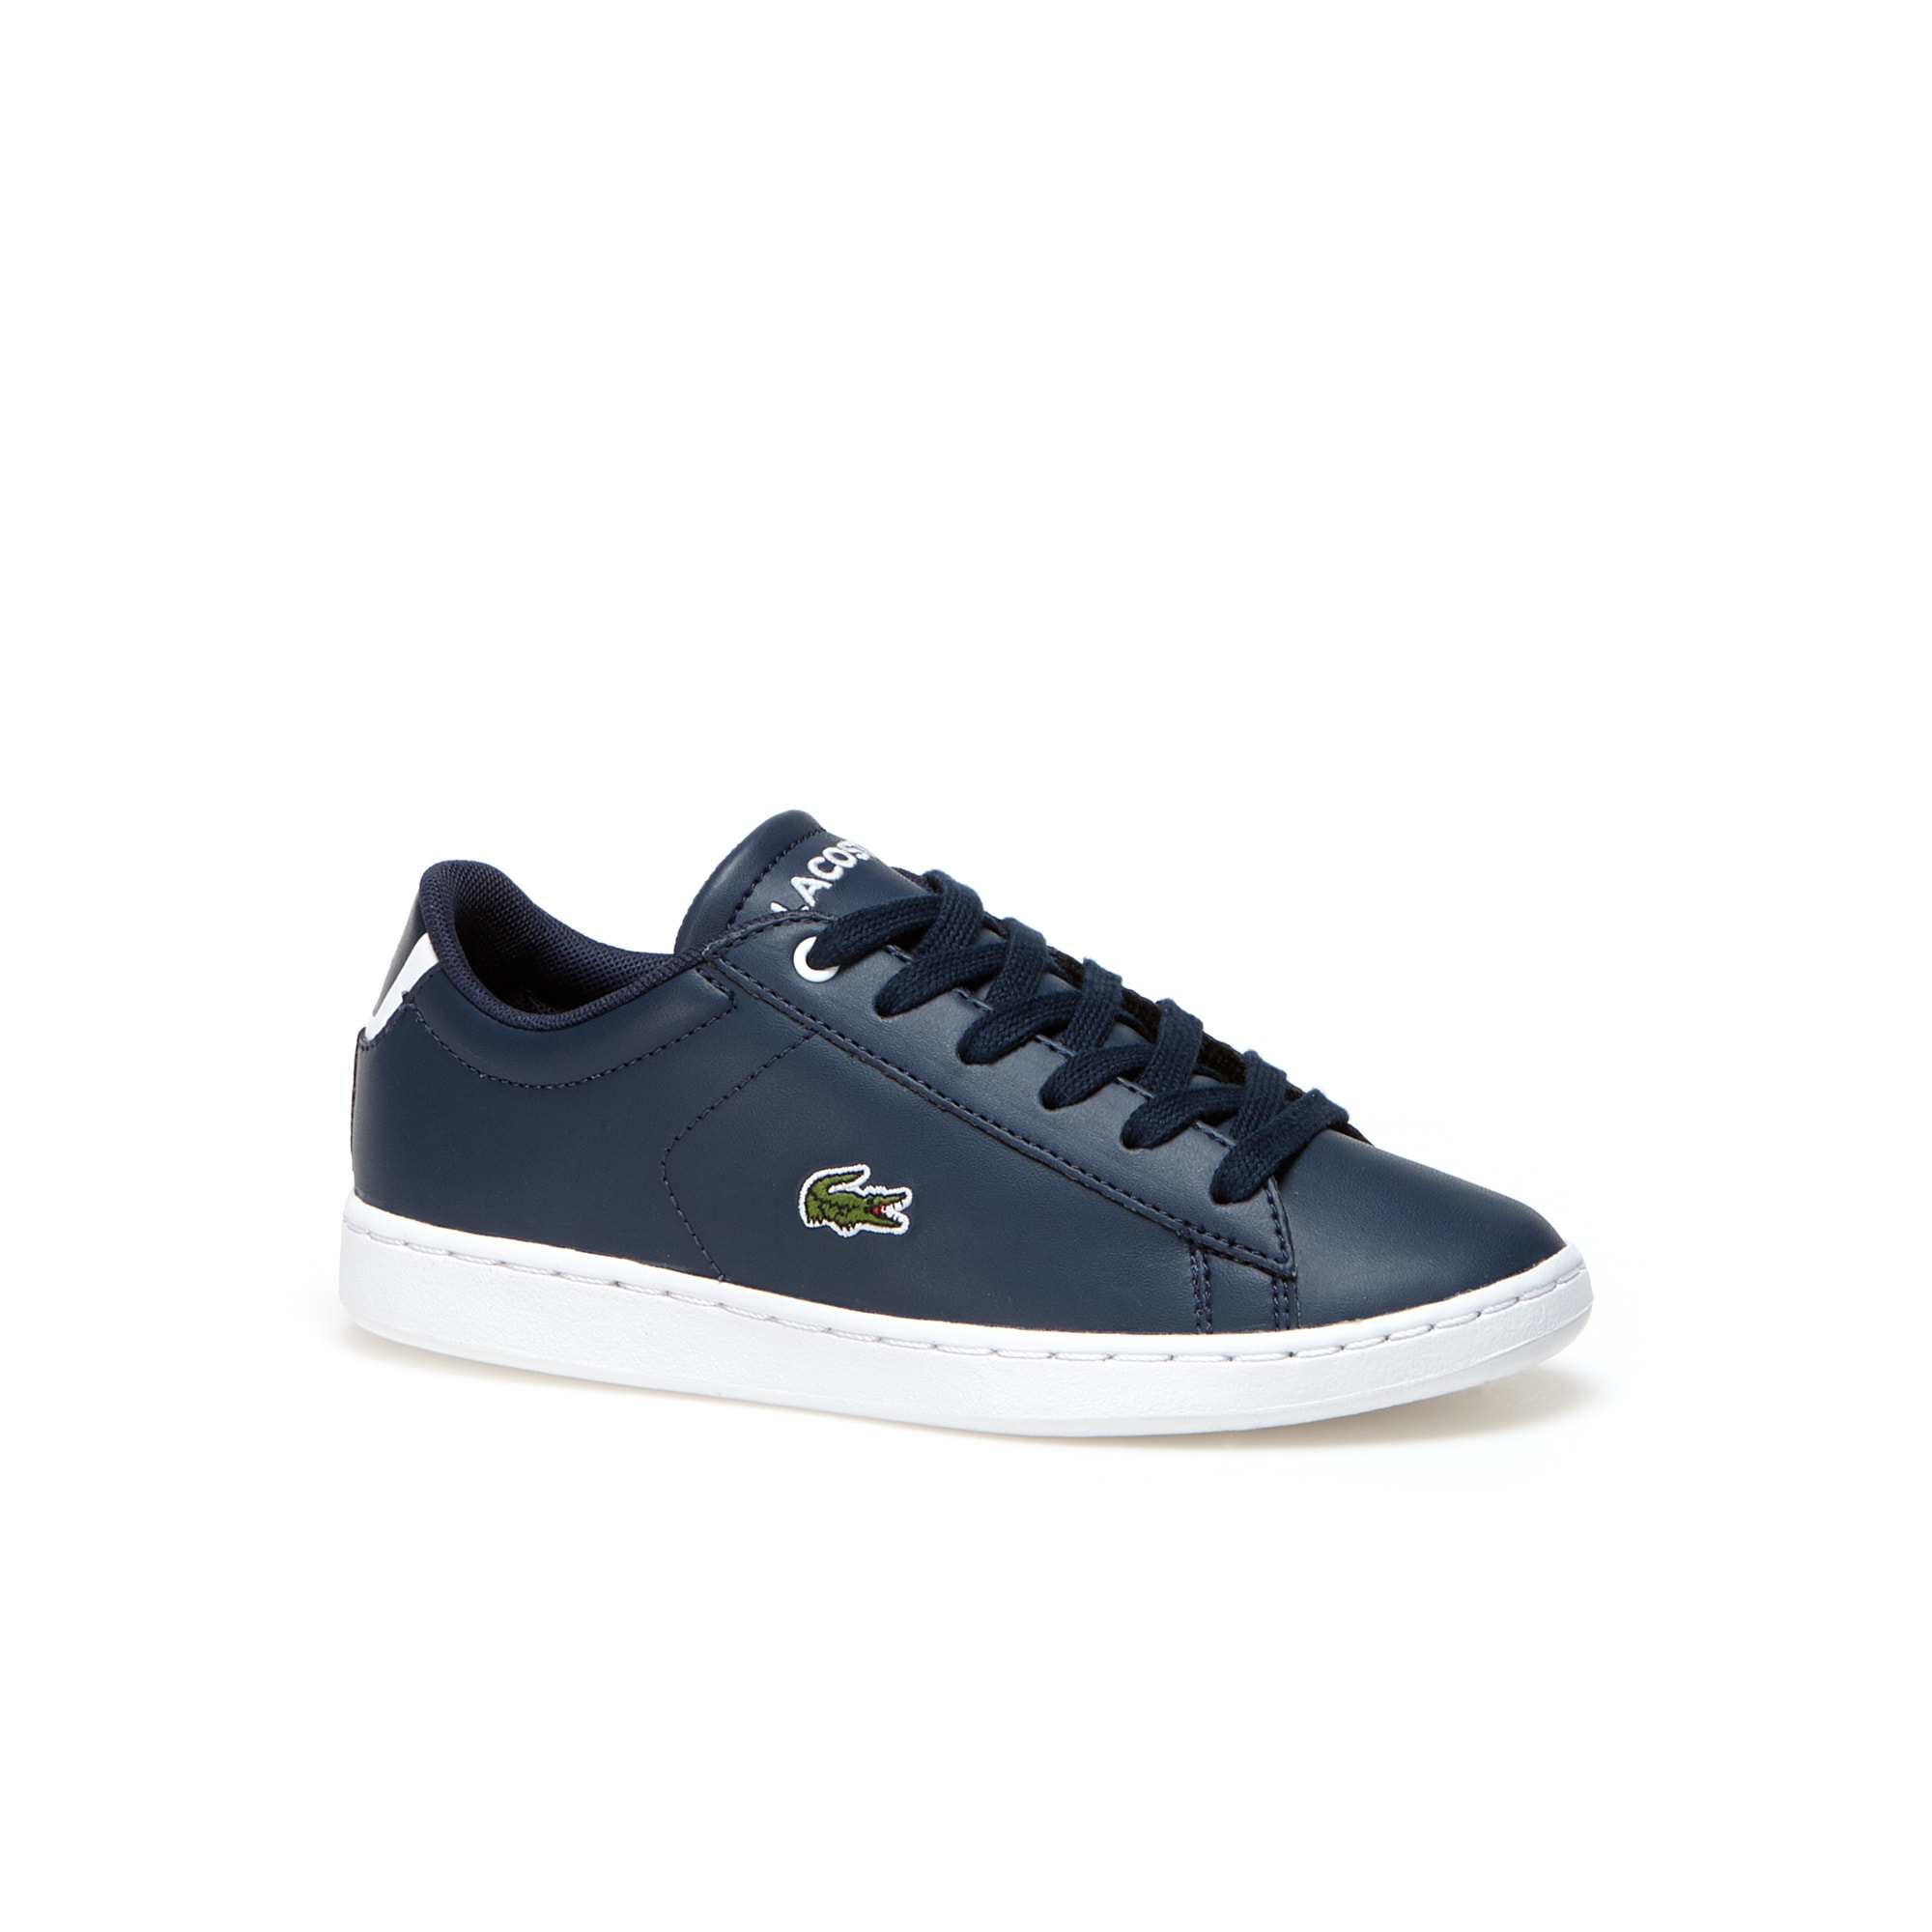 Sneakers Enfant Carnaby Evo à lacets